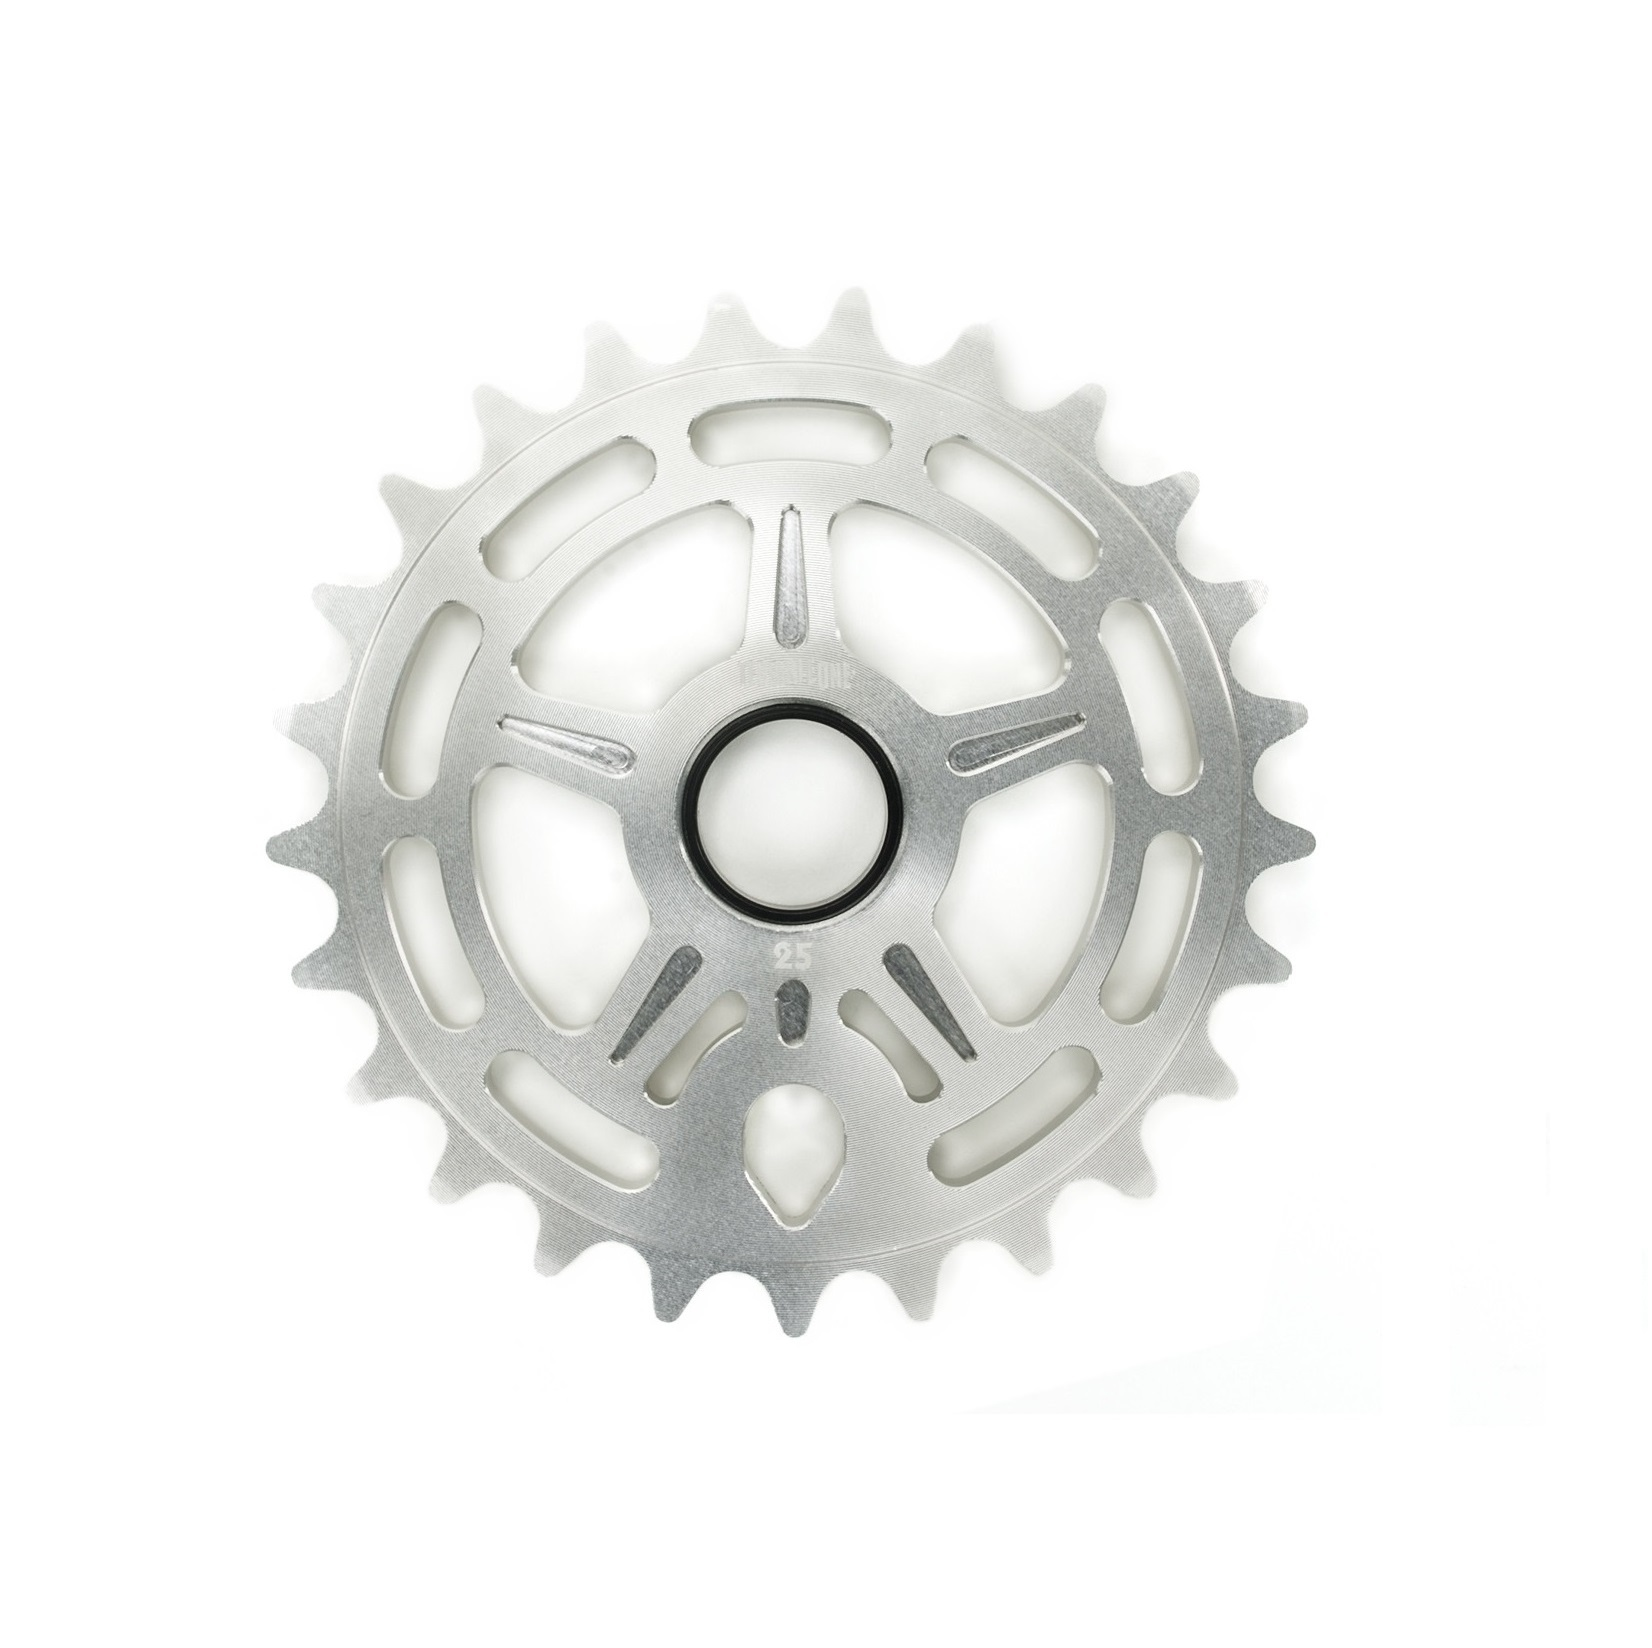 products-sprocket_logan_te8000-25sil_2.jpg